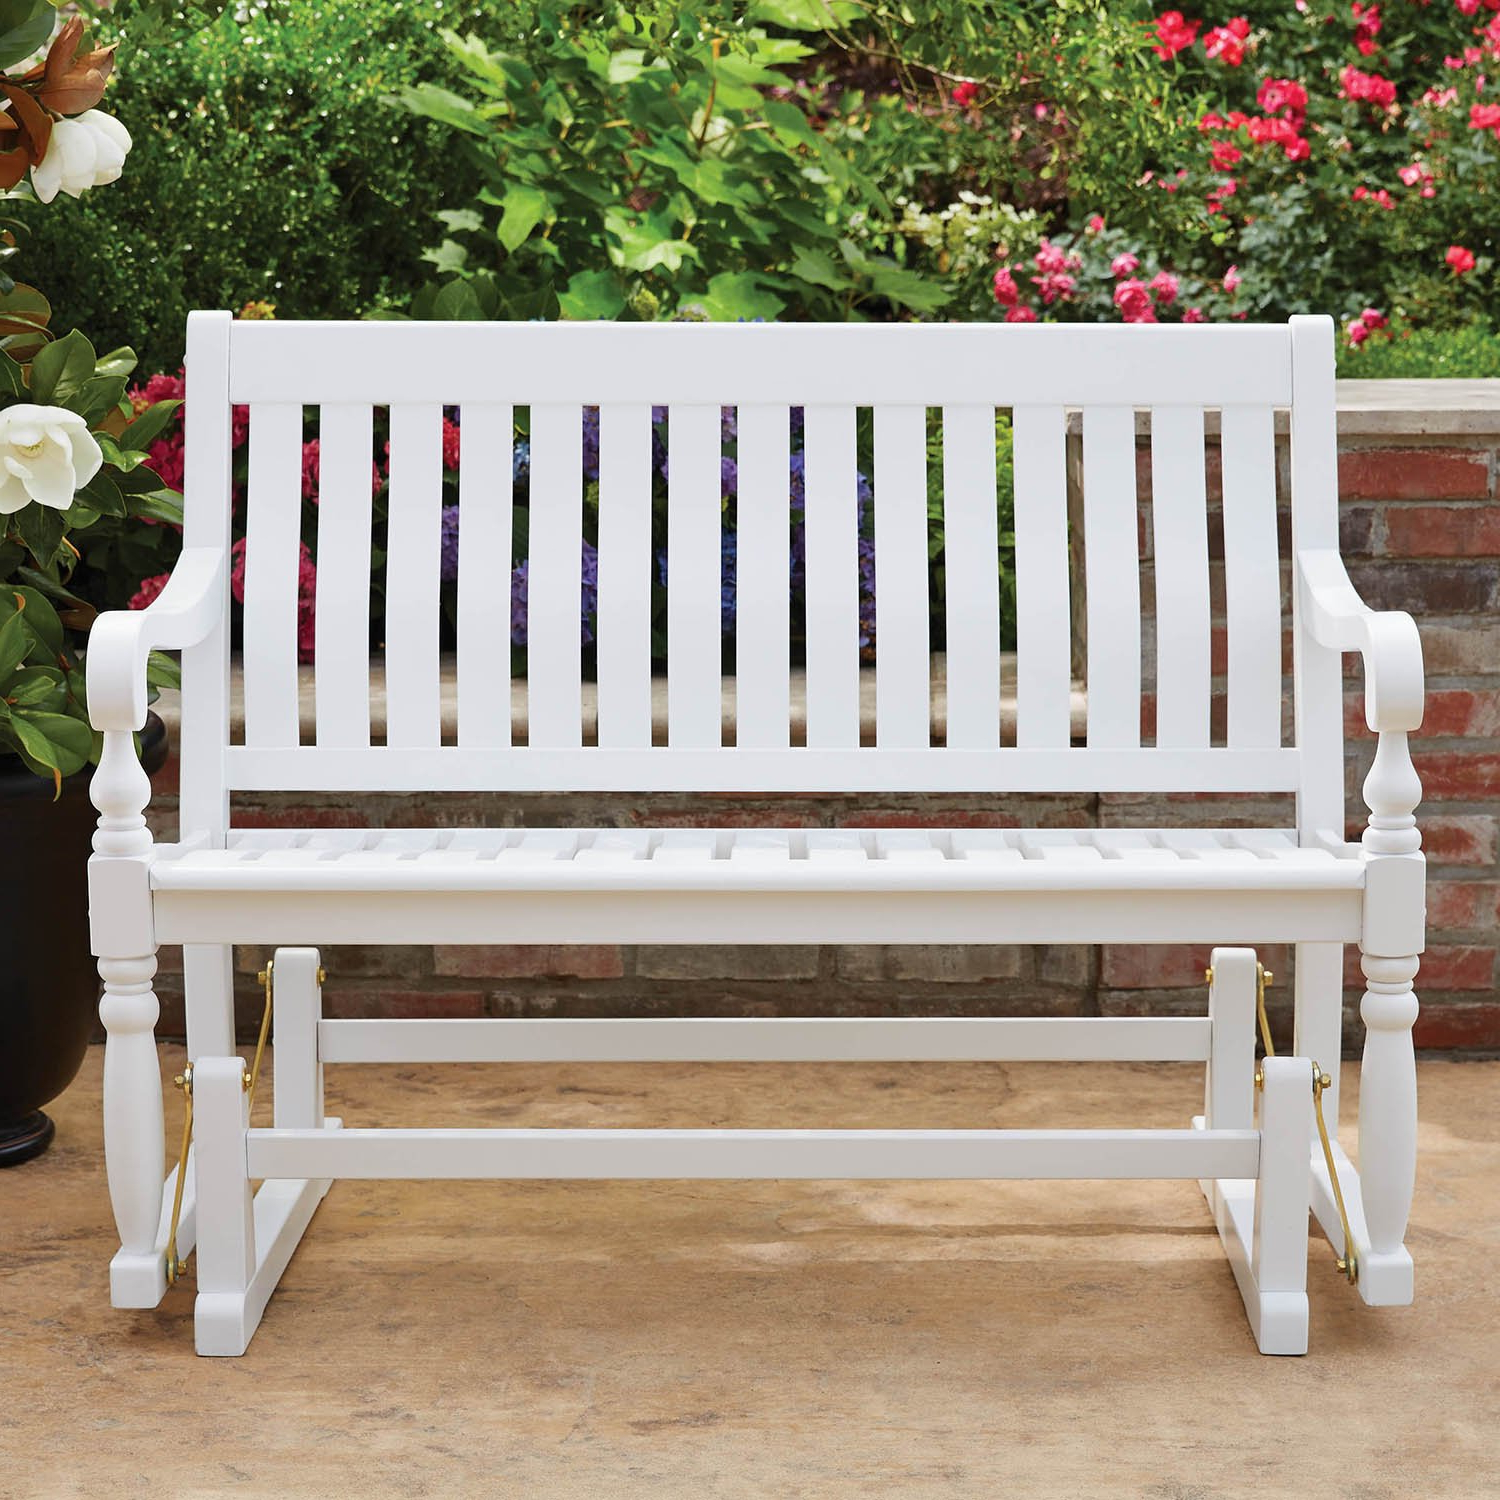 Trendy Hardwood Porch Glider Benches Regarding Details About Painted Wood Glider Bench (White) Country Farmhouse Shabby Chic 4 Feet Long Ft (View 29 of 30)